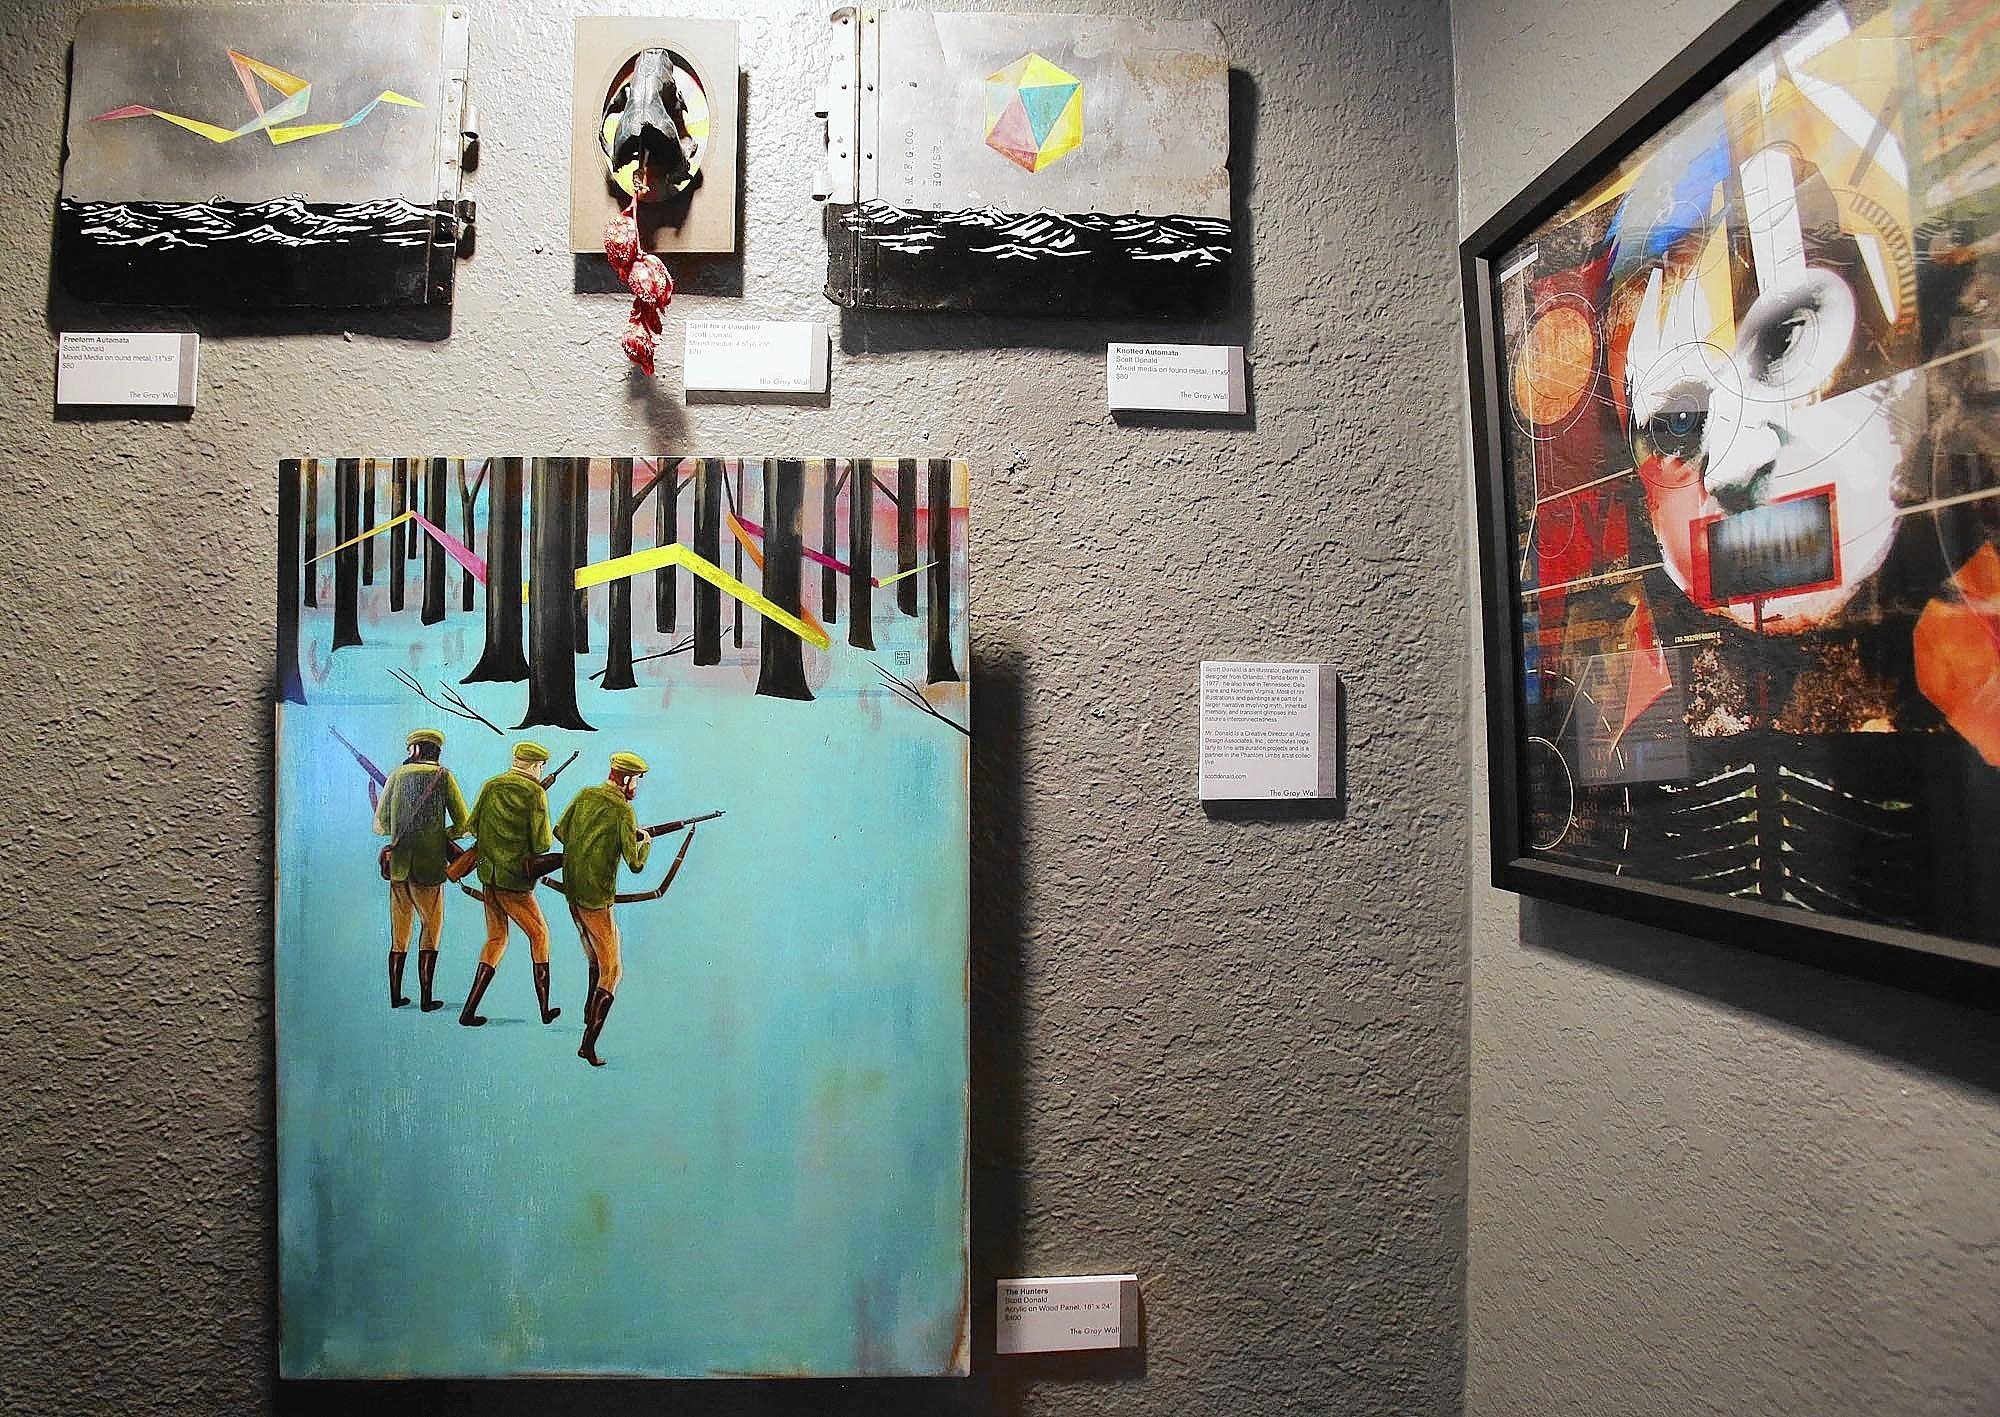 Art is on display at the Falcon Bar & Gallery in Orlando on Saturday, August 2, 2014.